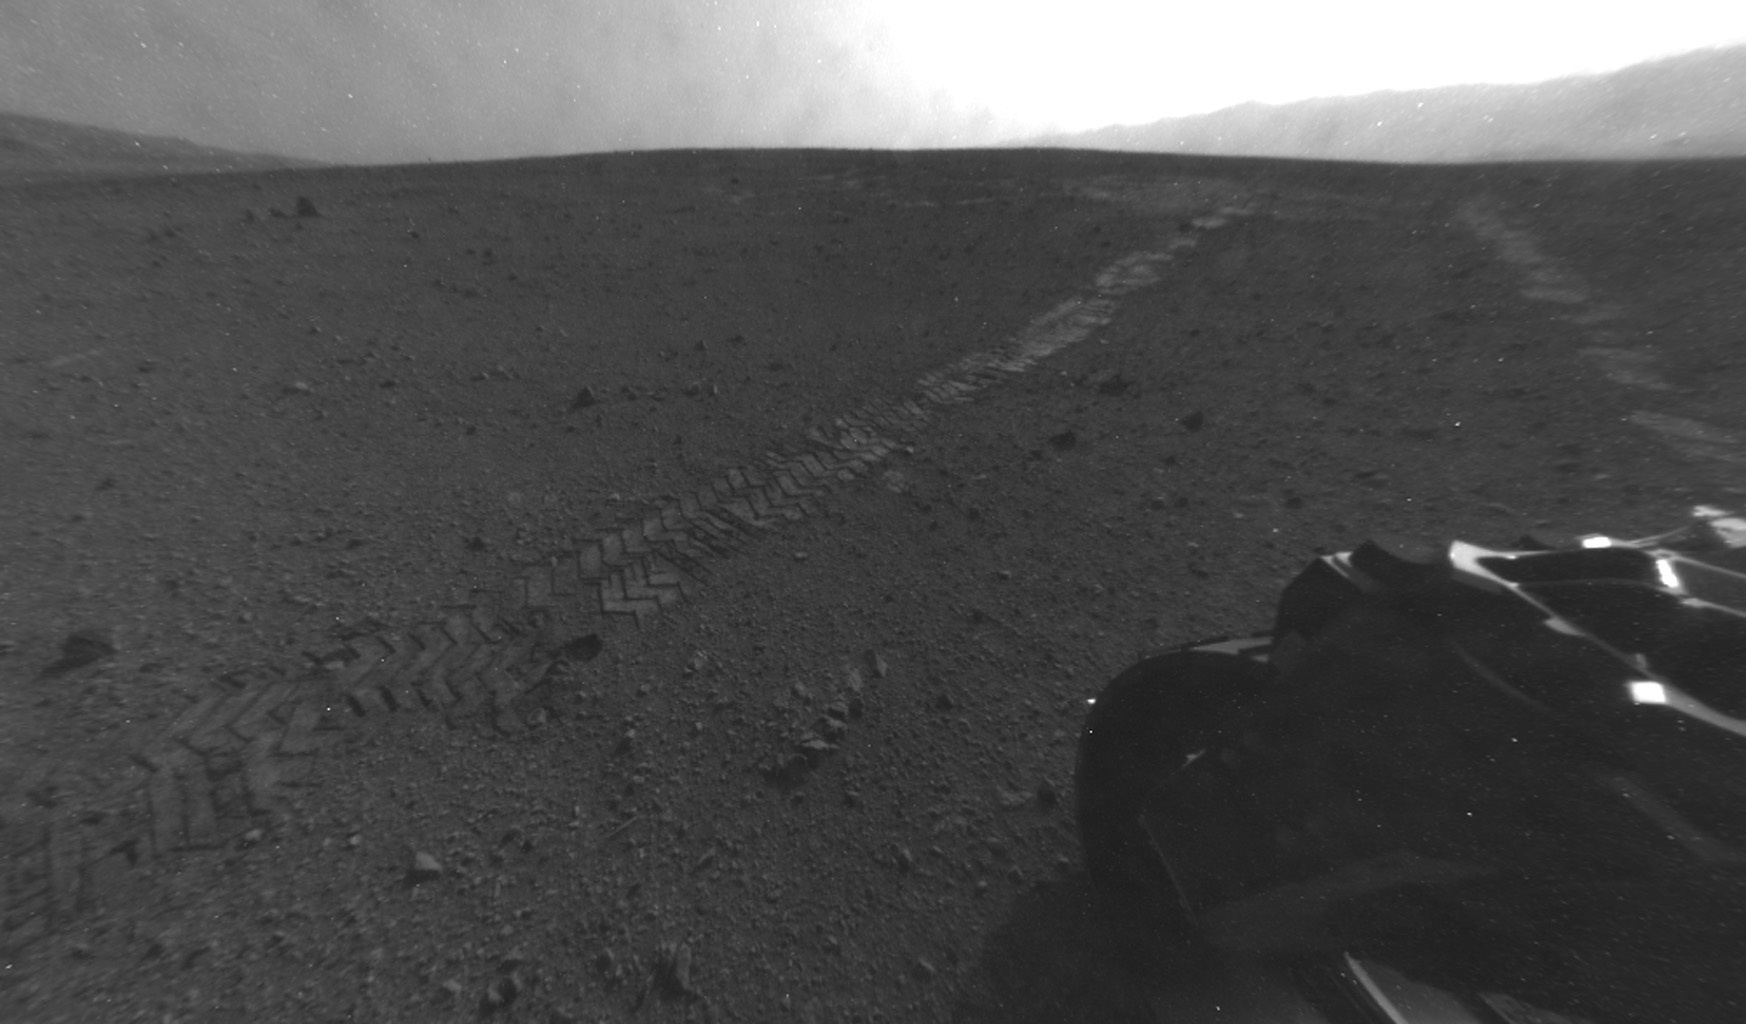 On Aug. 28, 2012, during the 22nd Martian day, or sol, after landing on Mars, NASA's Curiosity rover drove about 52 feet (16 meters) eastward, the longest drive of the mission so far. The drive imprinted the wheel tracks visible in this image.